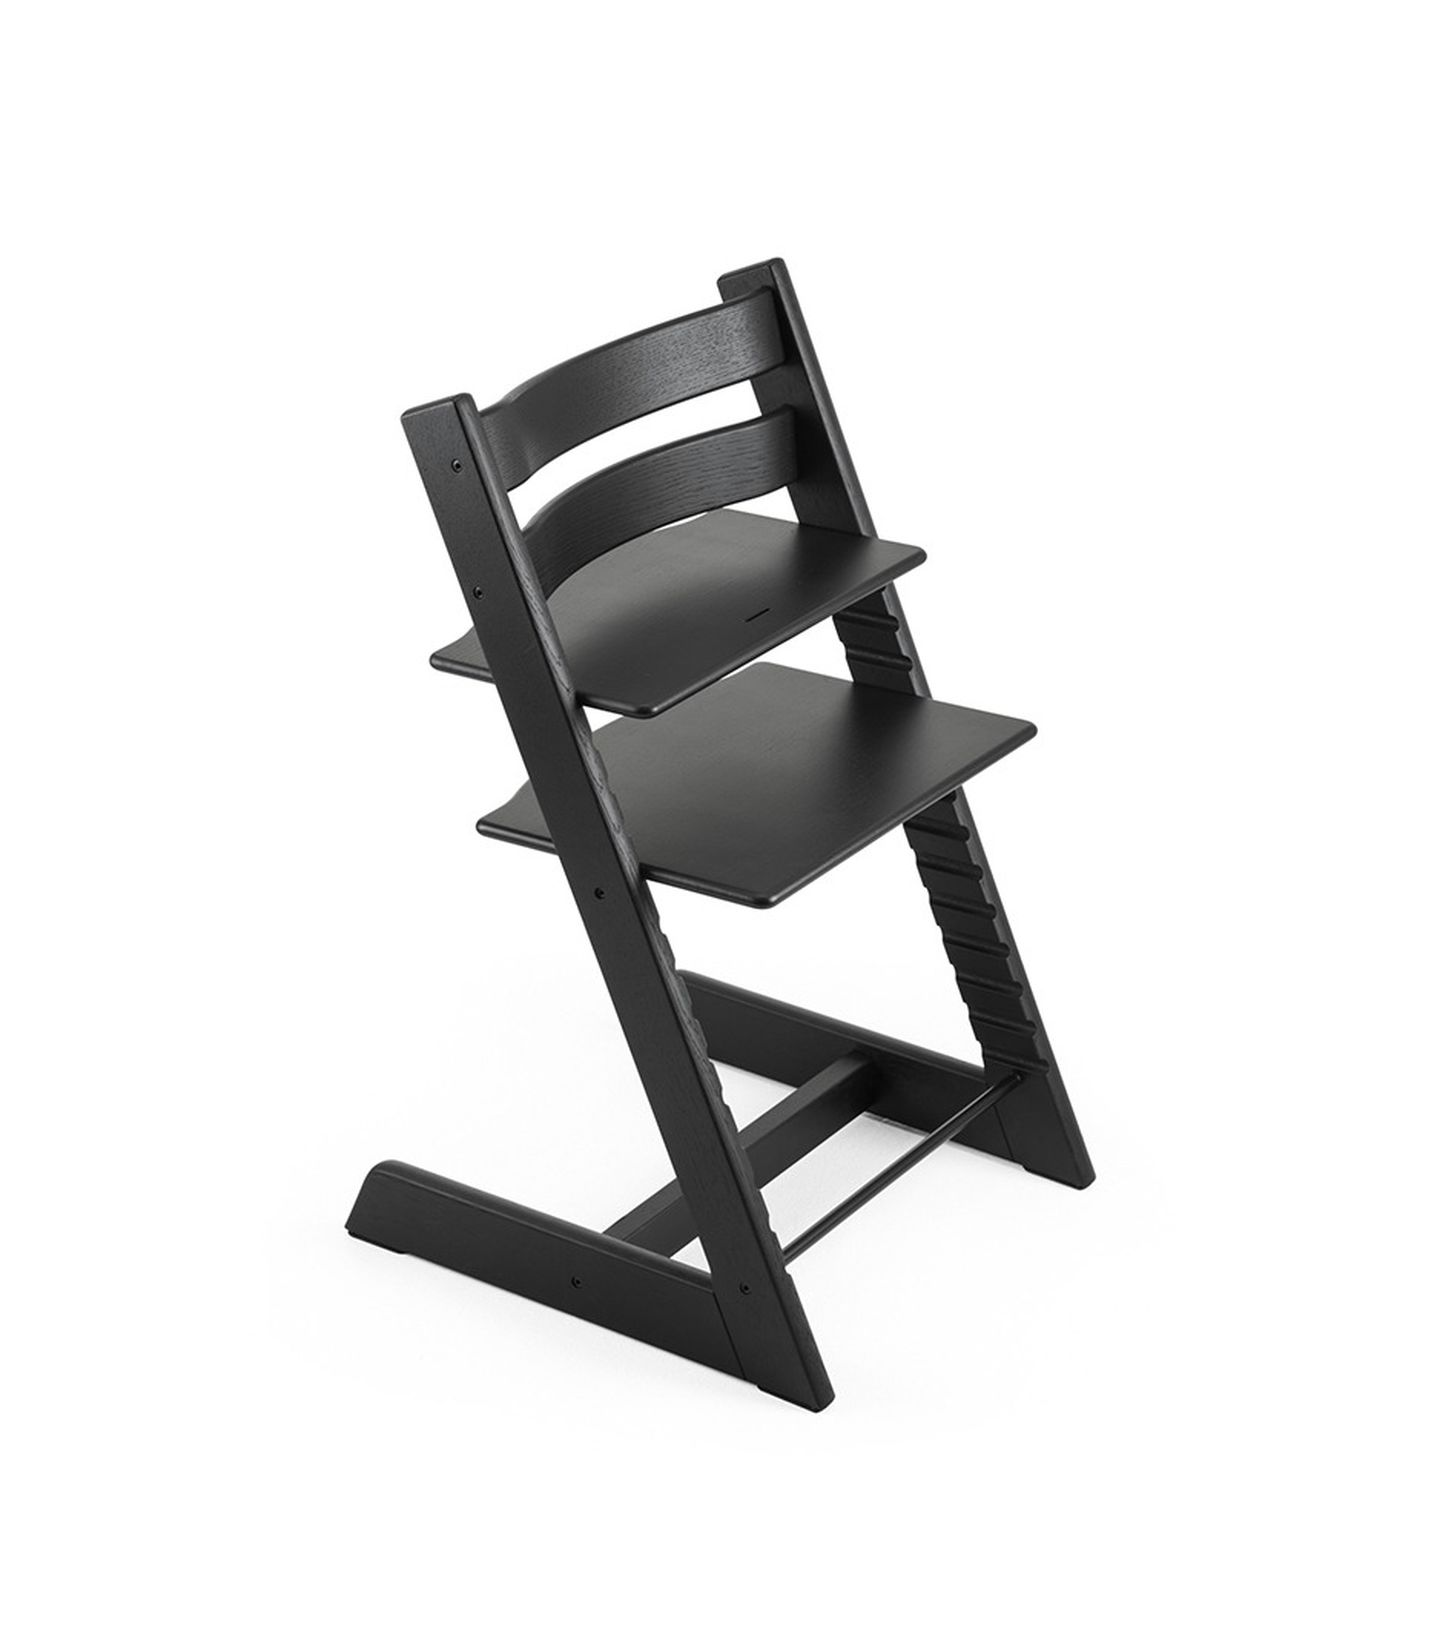 Stokke Tripp Trapp Chair Oak - Black